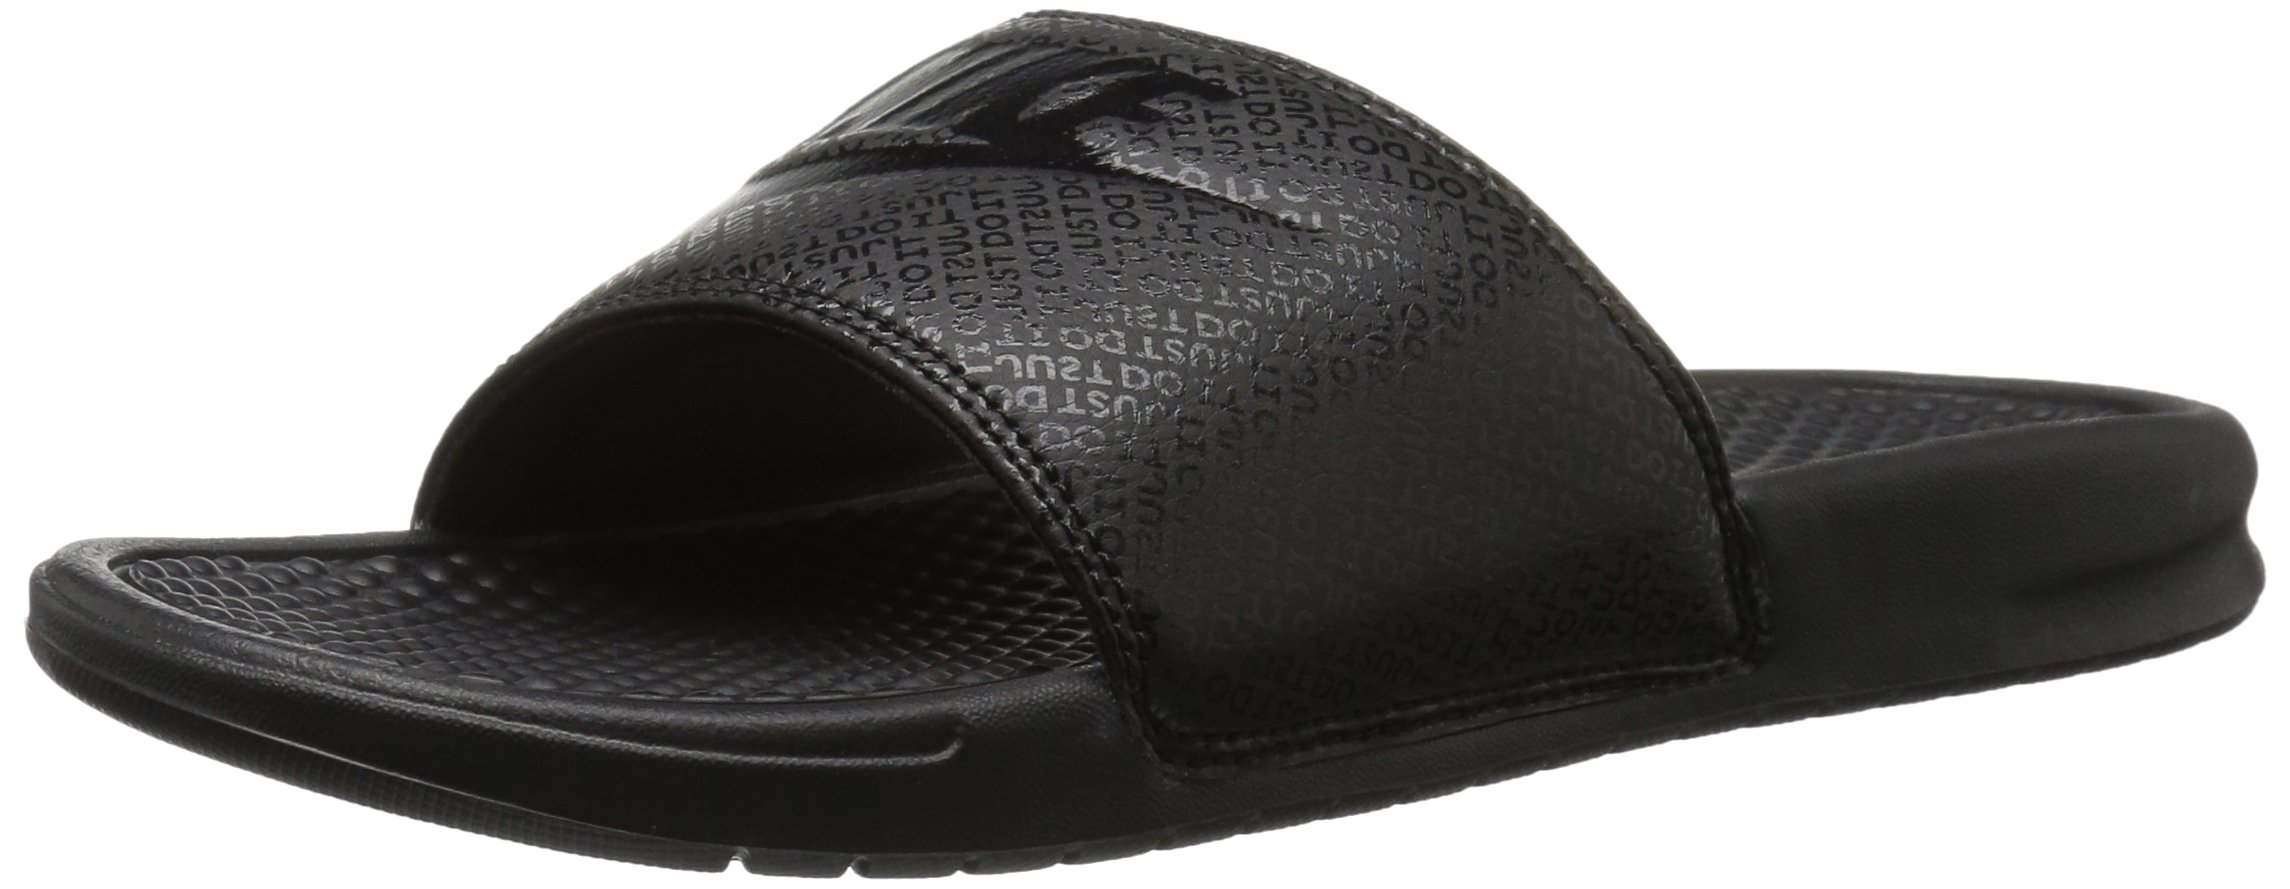 NIKE Men's Benassi Just Do It Slide Sandal, Black, 12 D(M) US